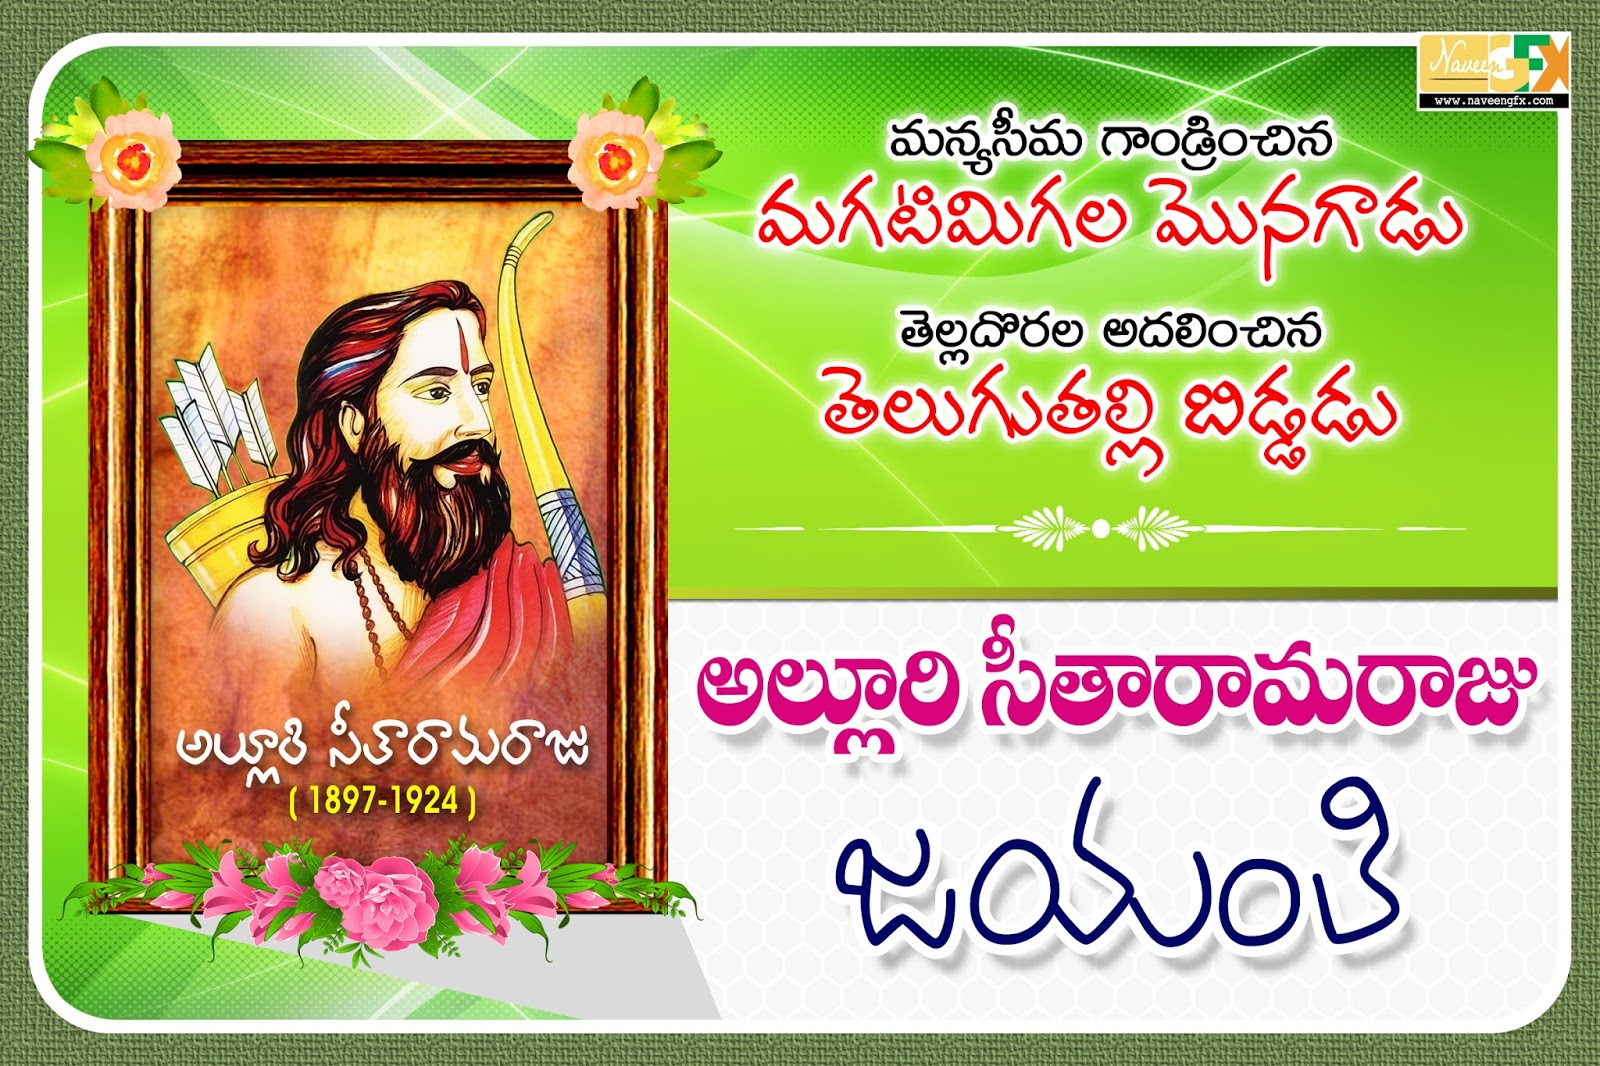 Amazing Wallpaper Logo Raju - alluri-sita-rama-raju-jayanti-hd-posters-wallpapers  Pic_87089.jpg